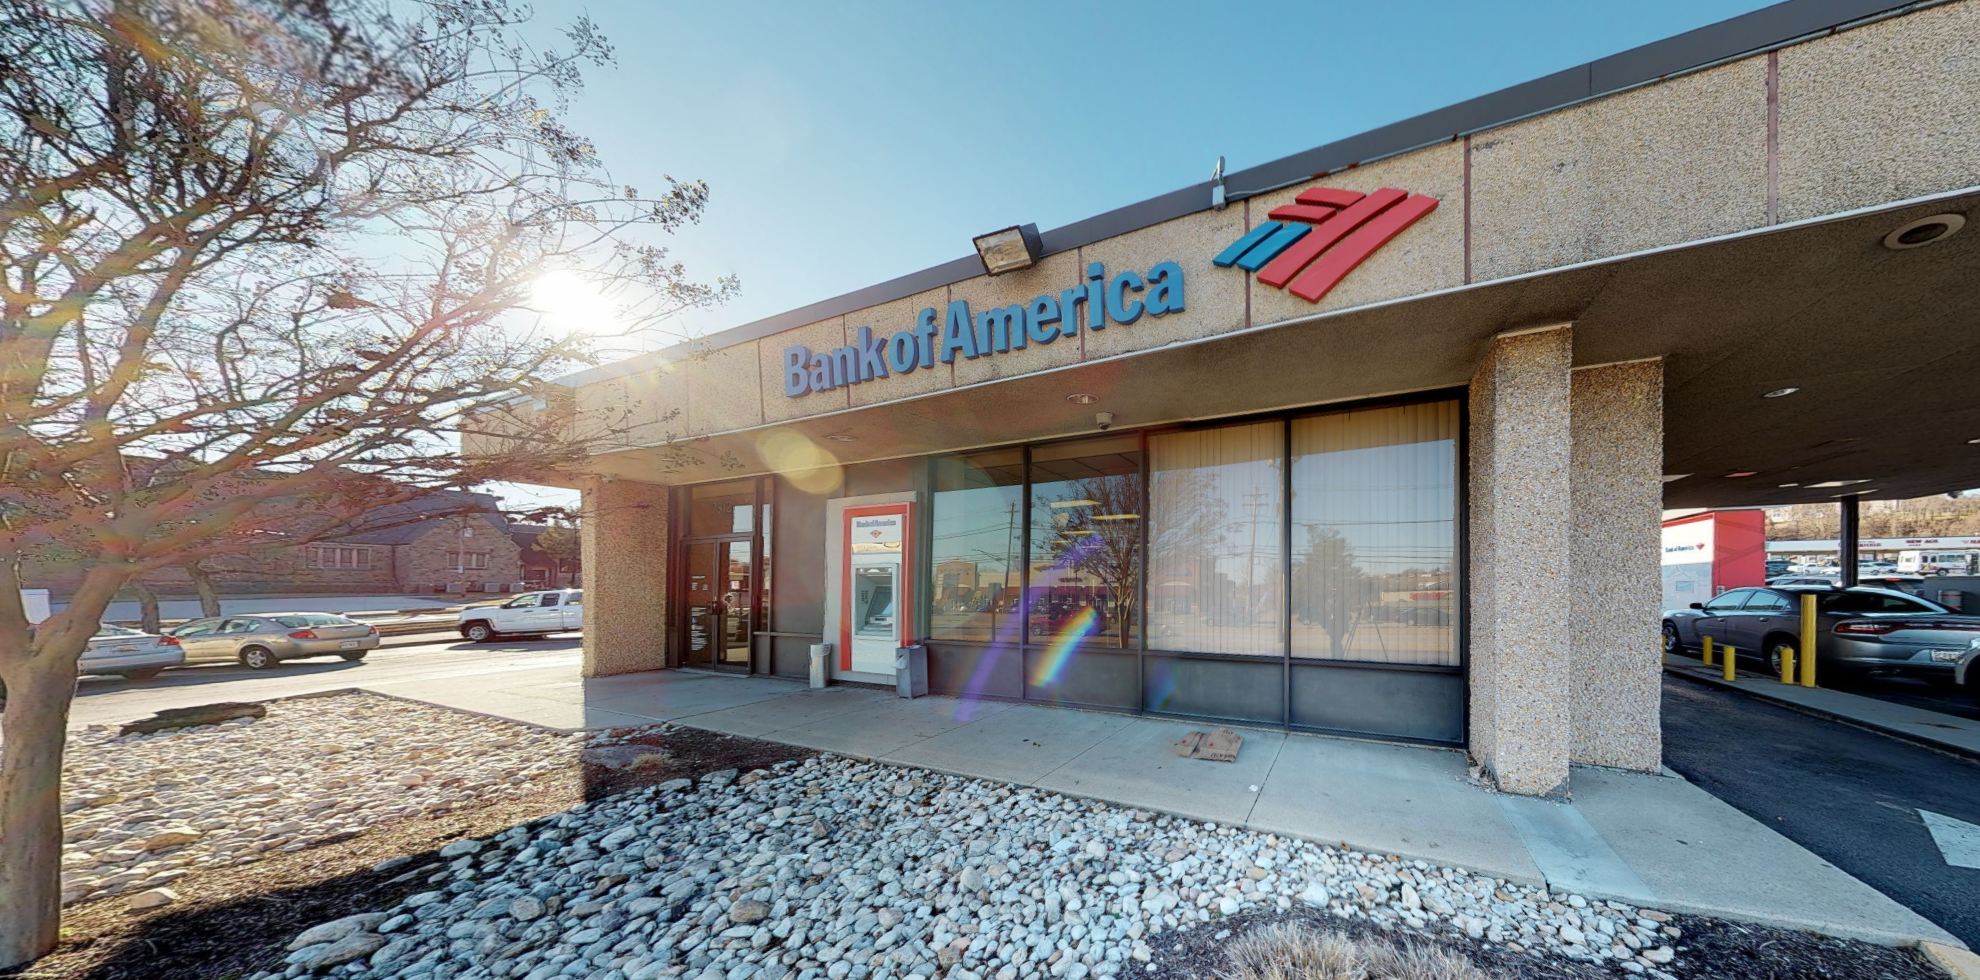 Bank of America financial center with drive-thru ATM and teller | 7912 Belair Rd, Baltimore, MD 21236